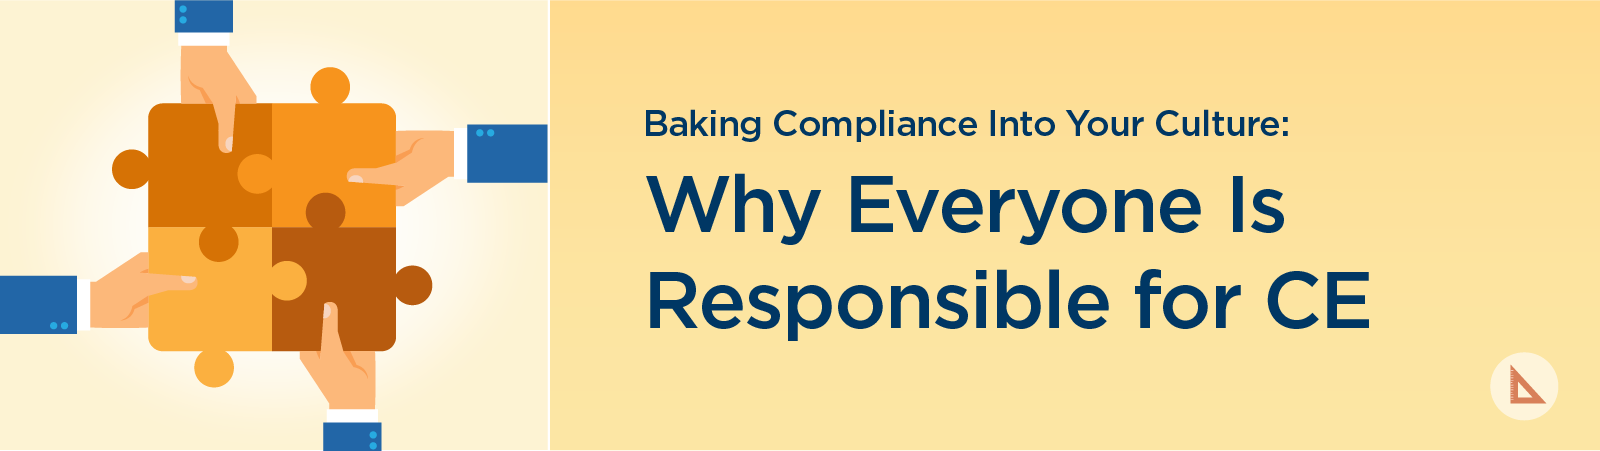 Baking Compliance Into Your Culture: Why Everyone Is Responsible for CE